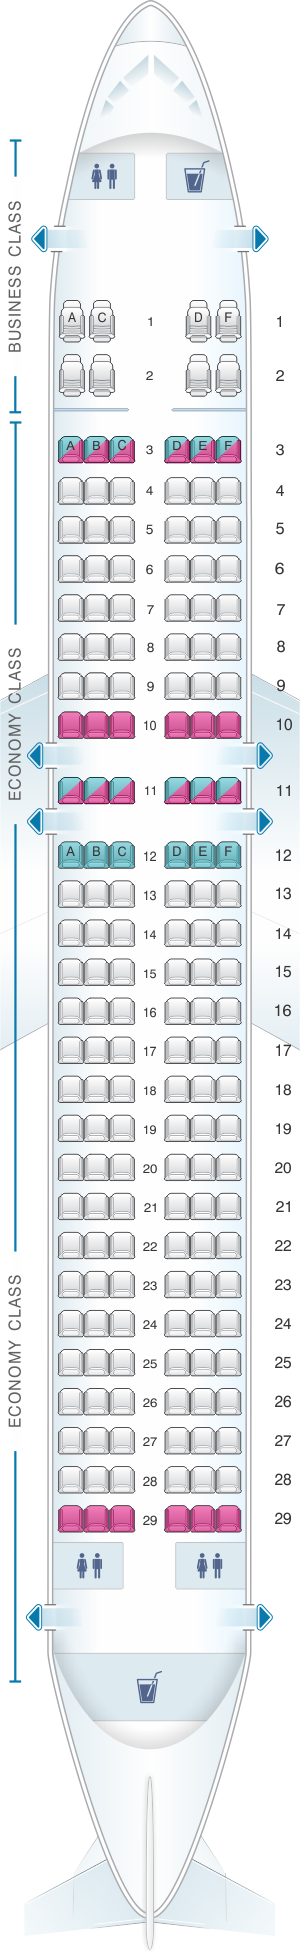 Seat map for TAP Air Portugal Airbus A320